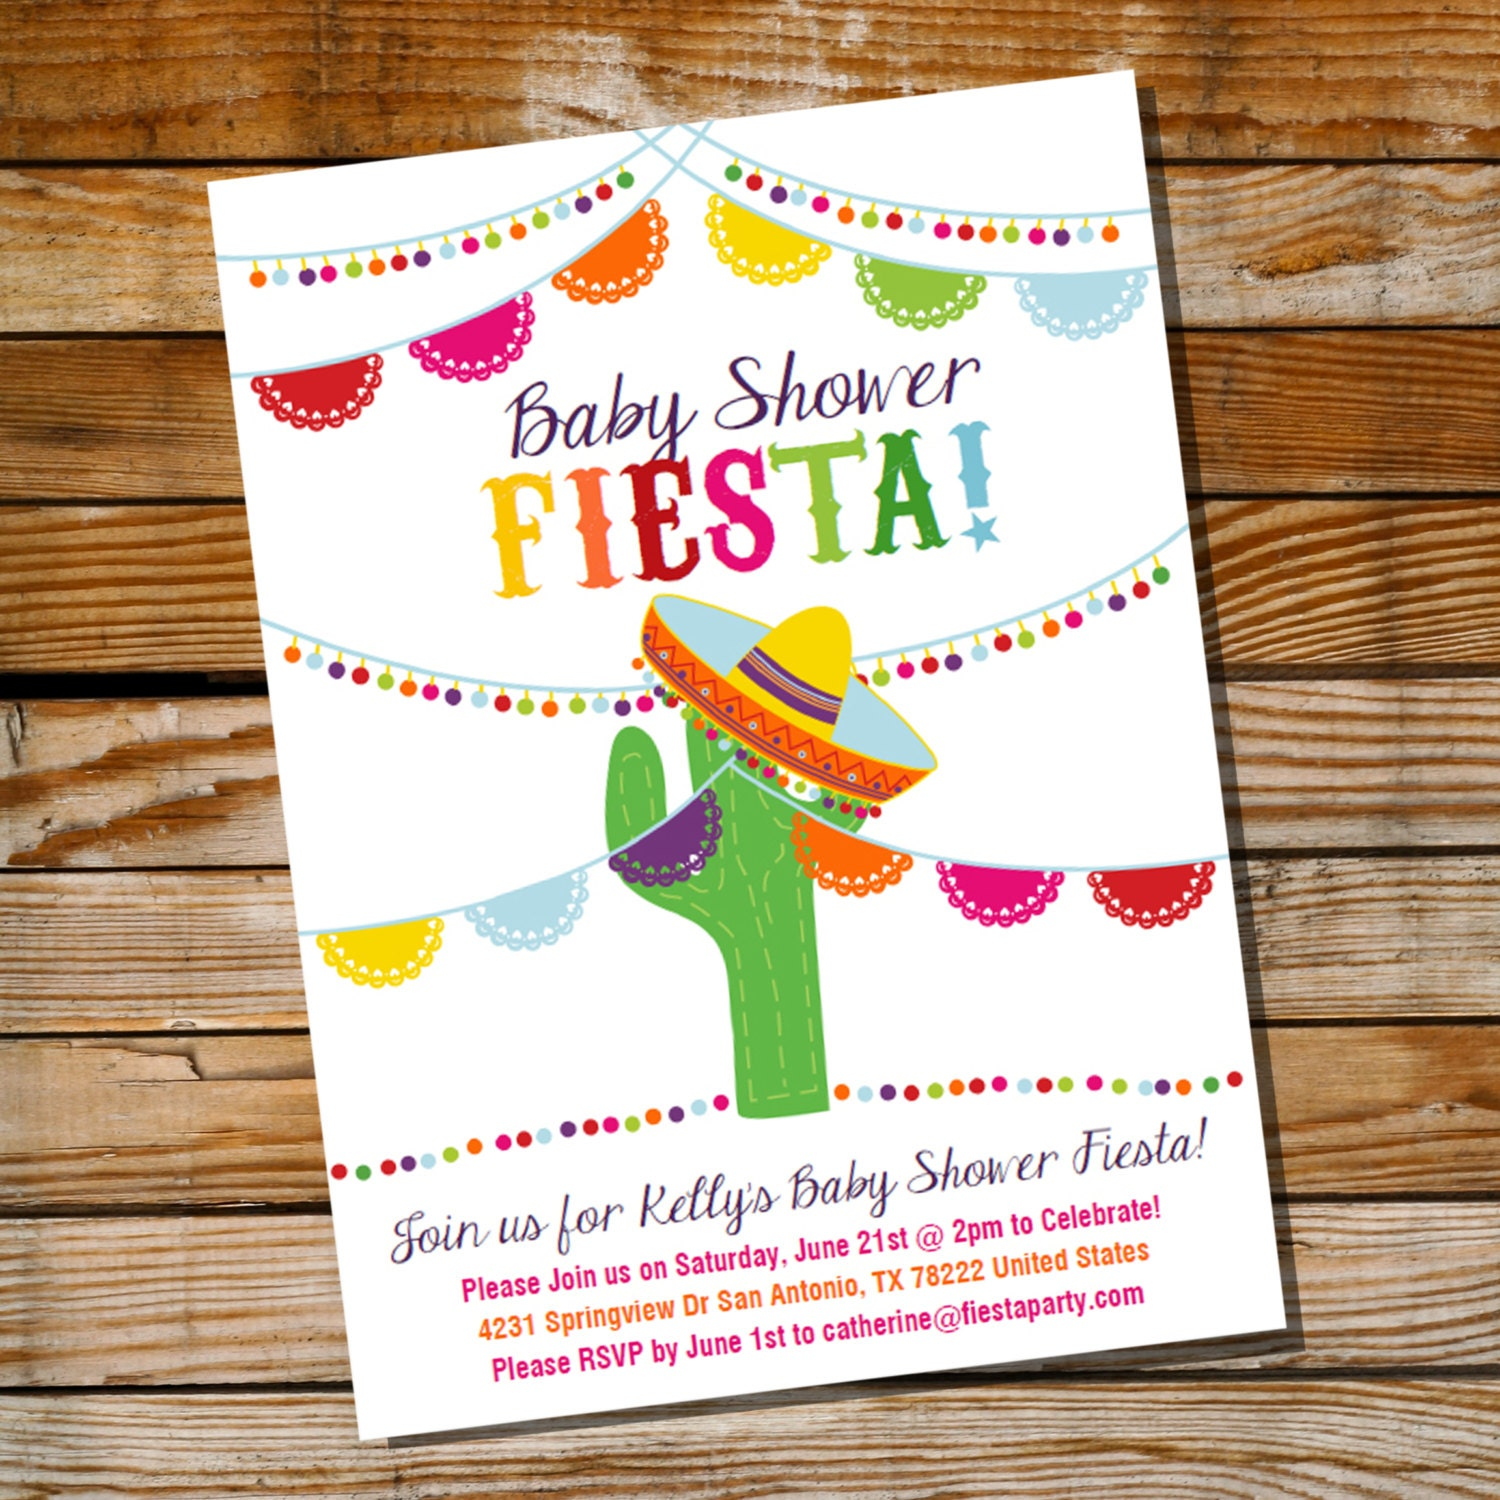 fiesta invitation  etsy, invitation samples